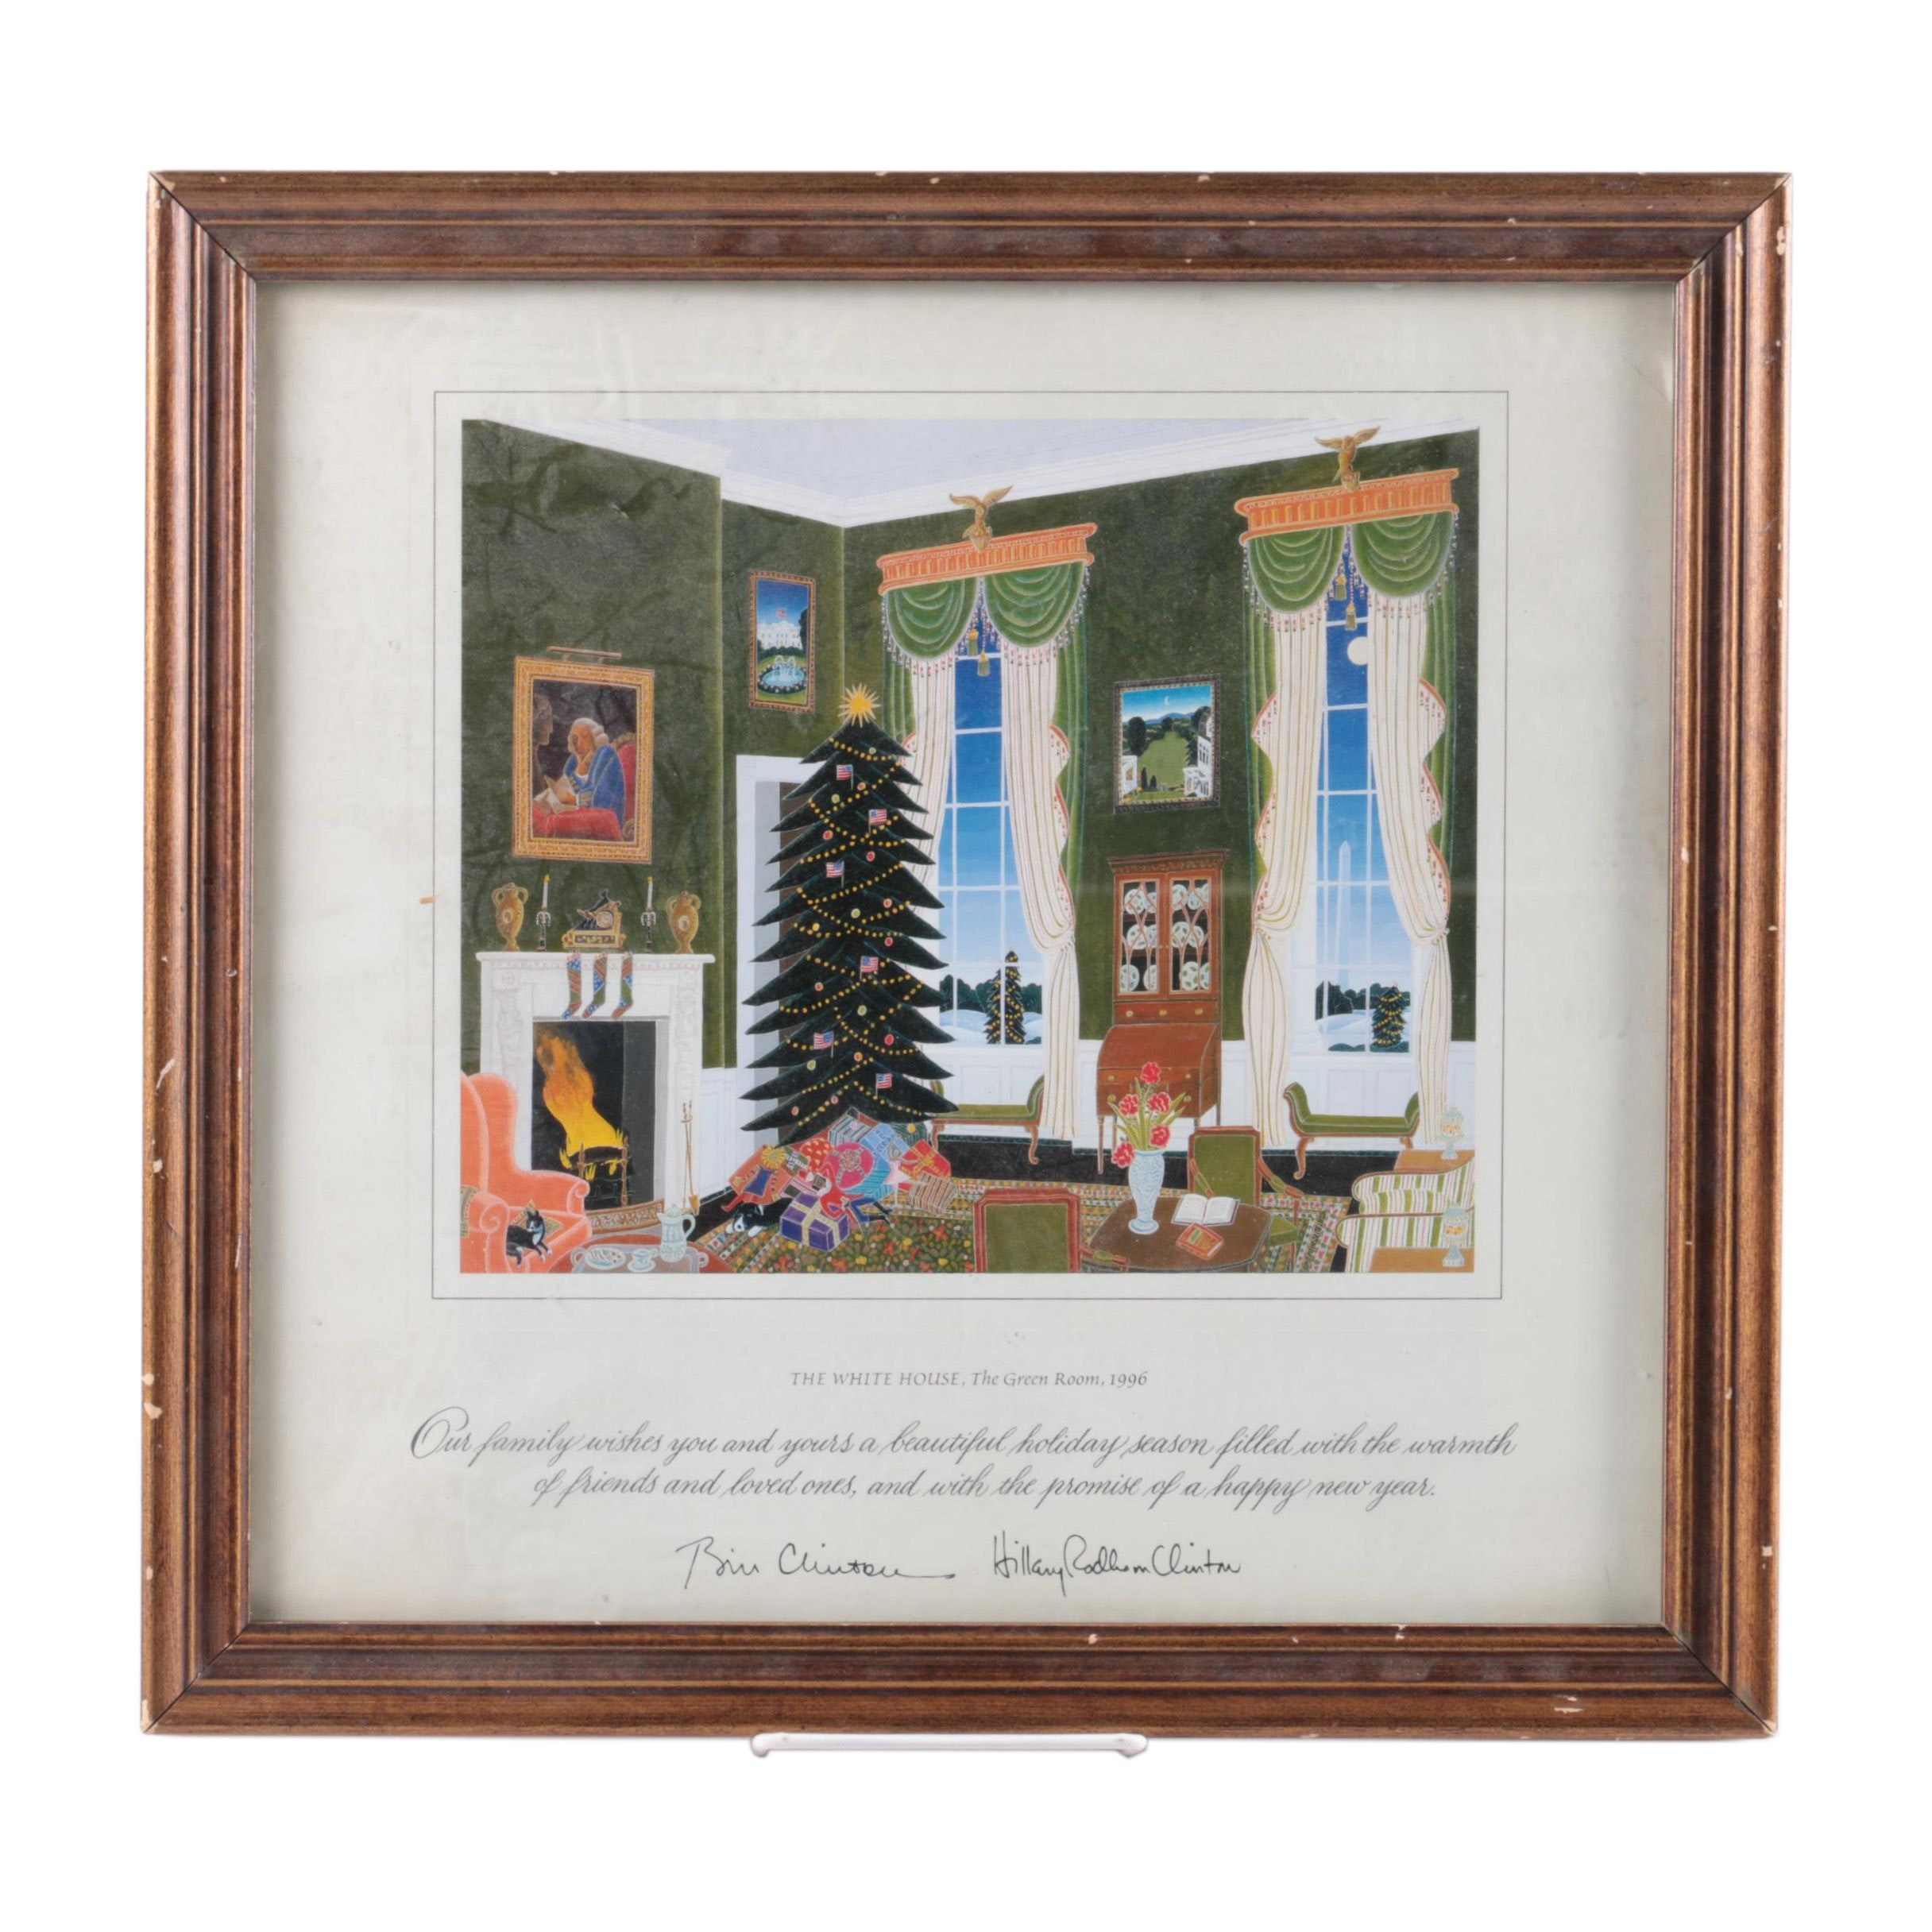 1996 Bill and Hillary Clinton White House Holiday Gift Print in Frame